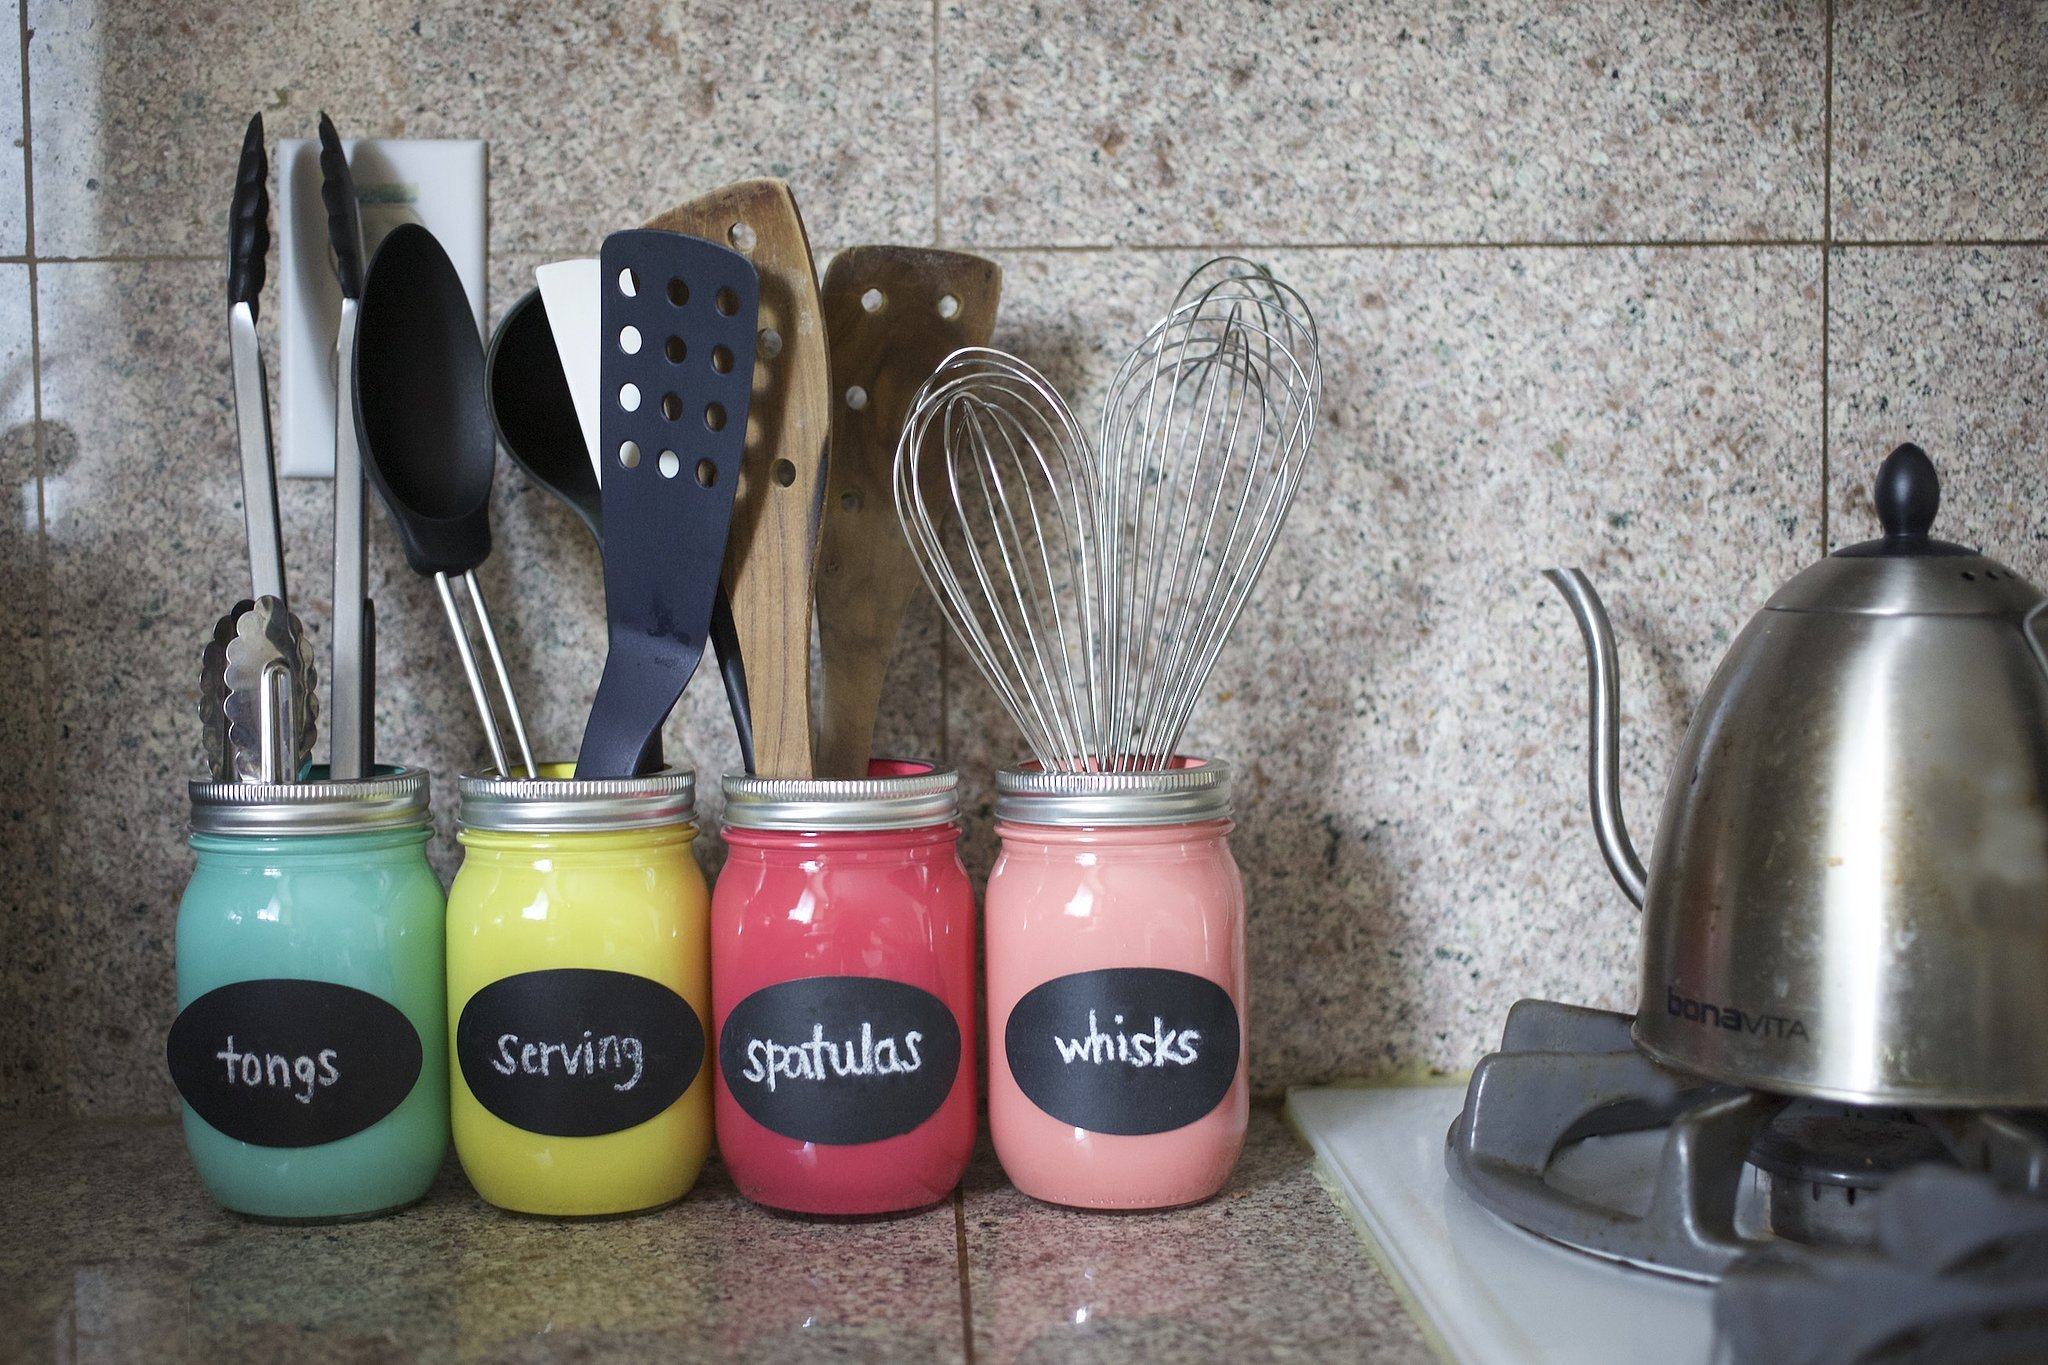 Brighten Up Your Kitchen With a Colorful DIY Mason Jar Organizer